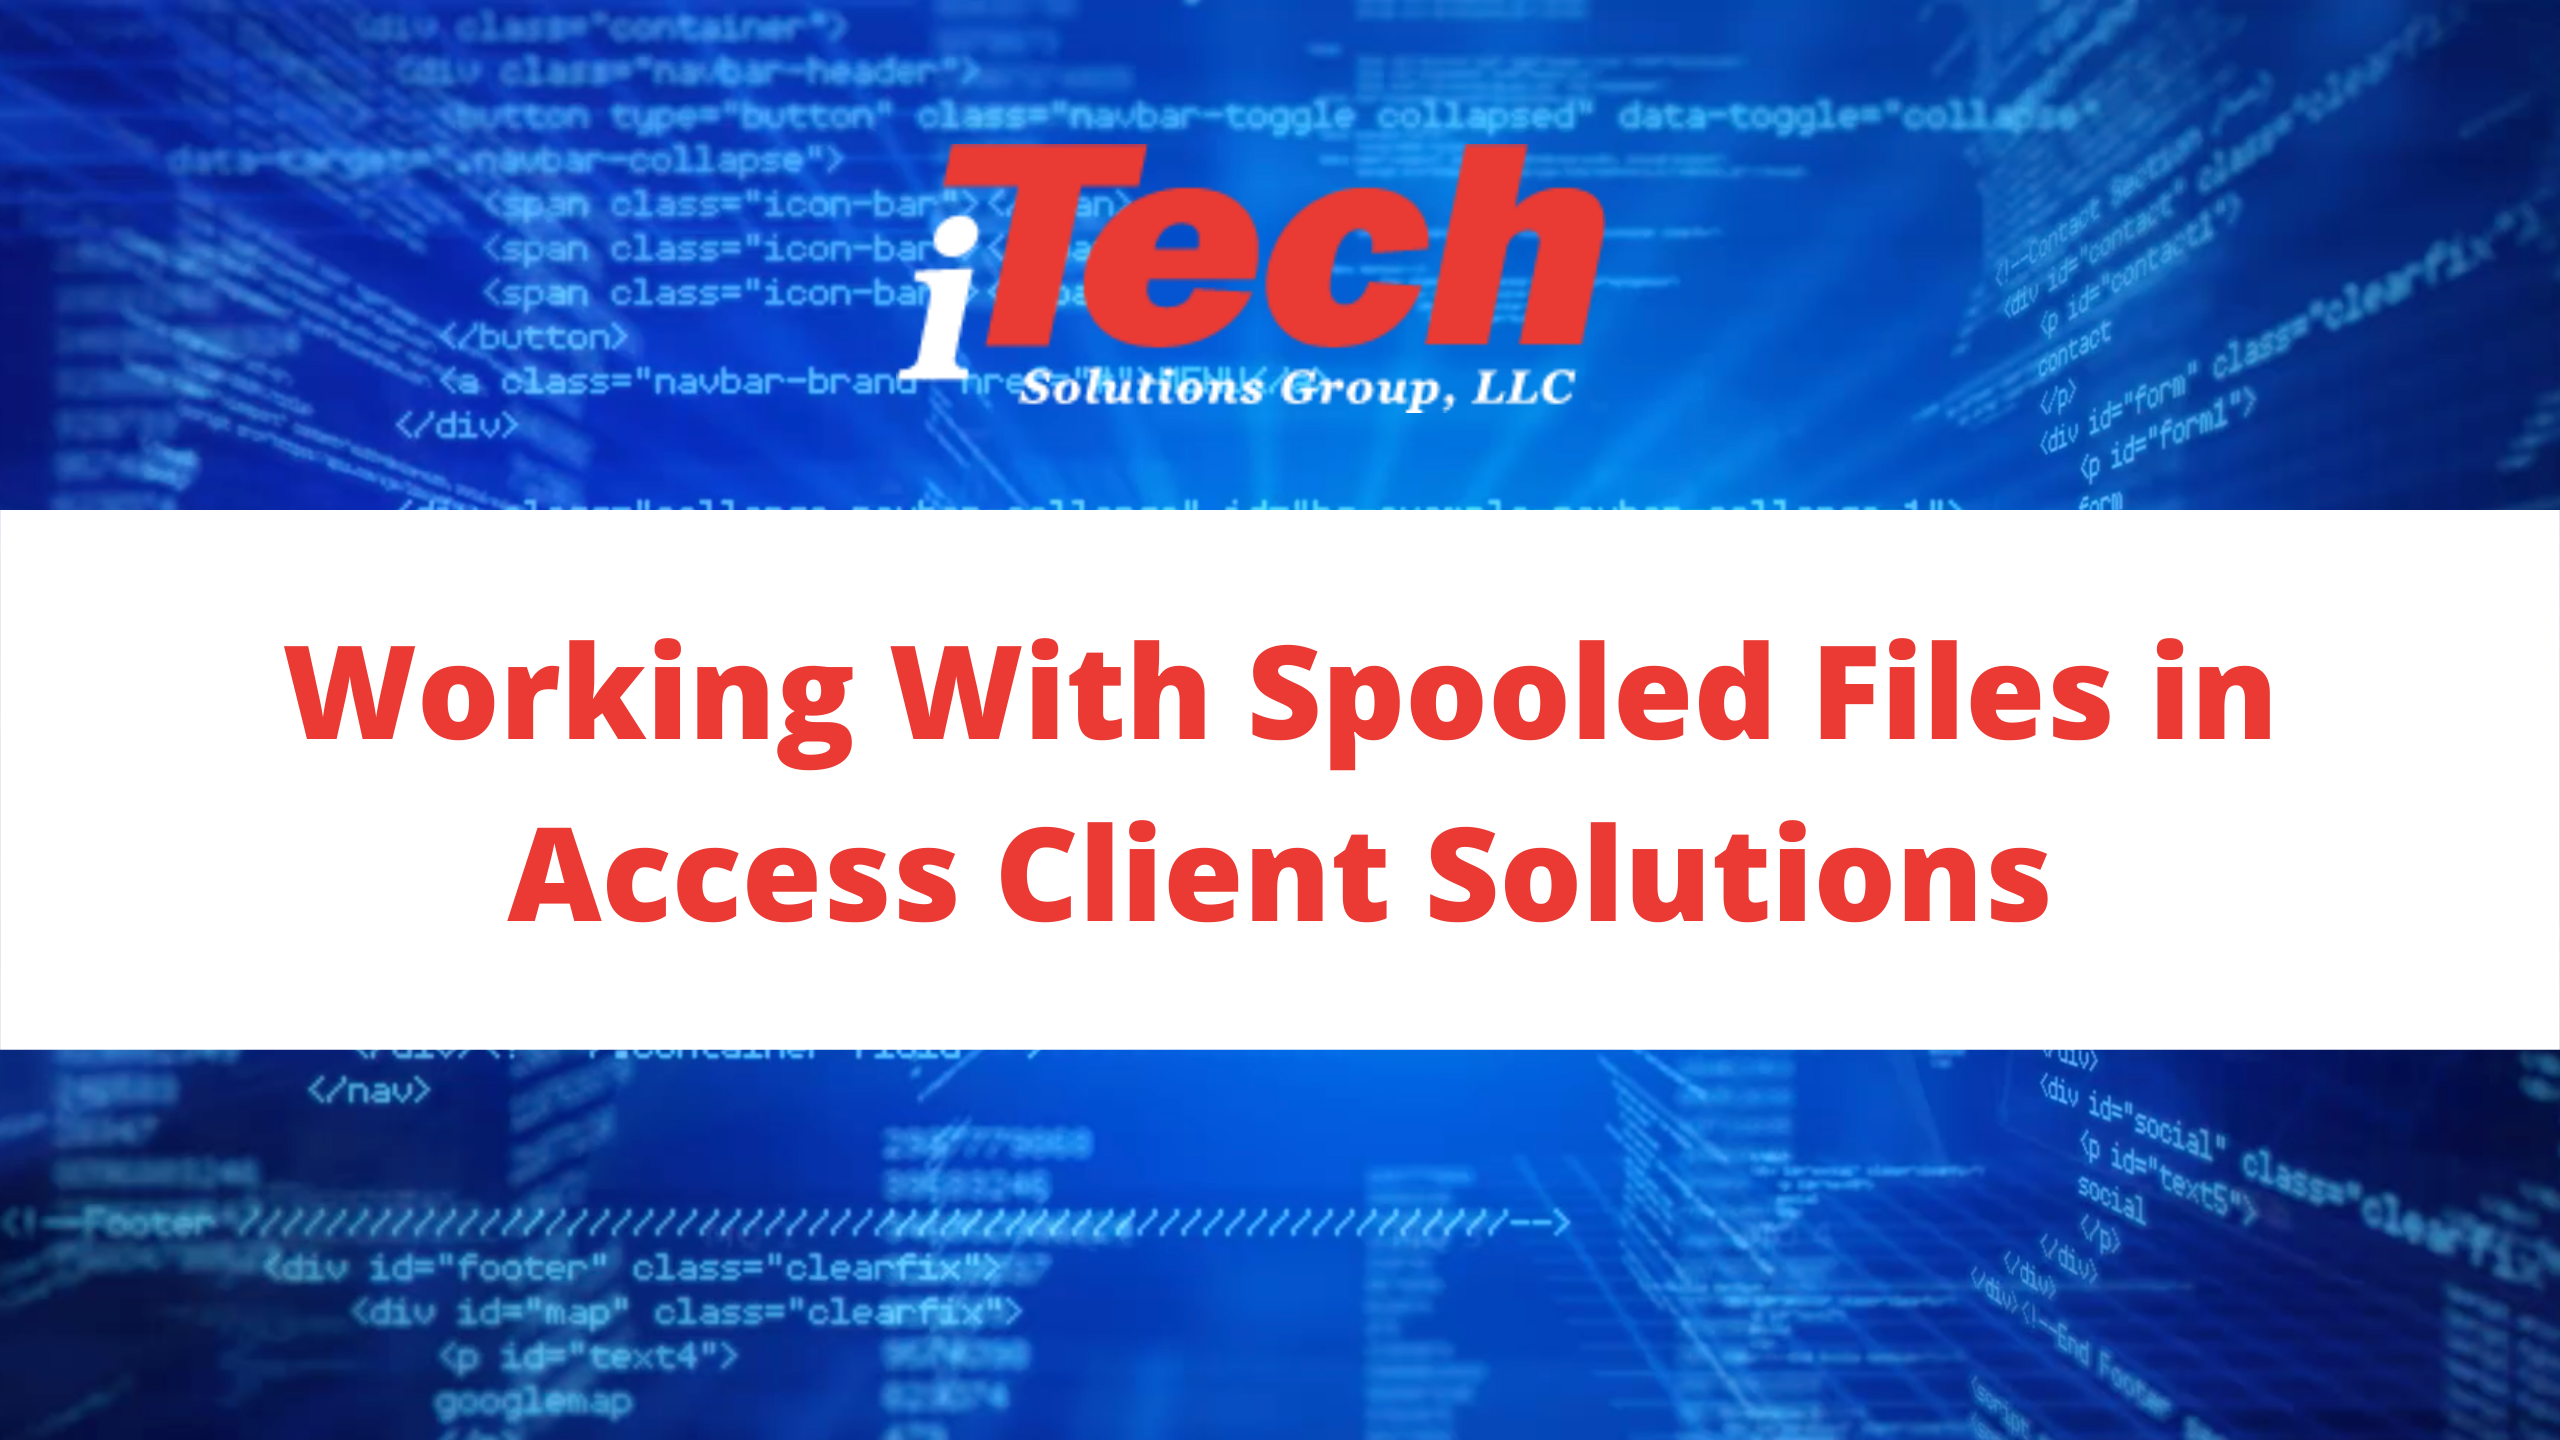 Youtube_ Working With Spooled Files in Access Client Solutions